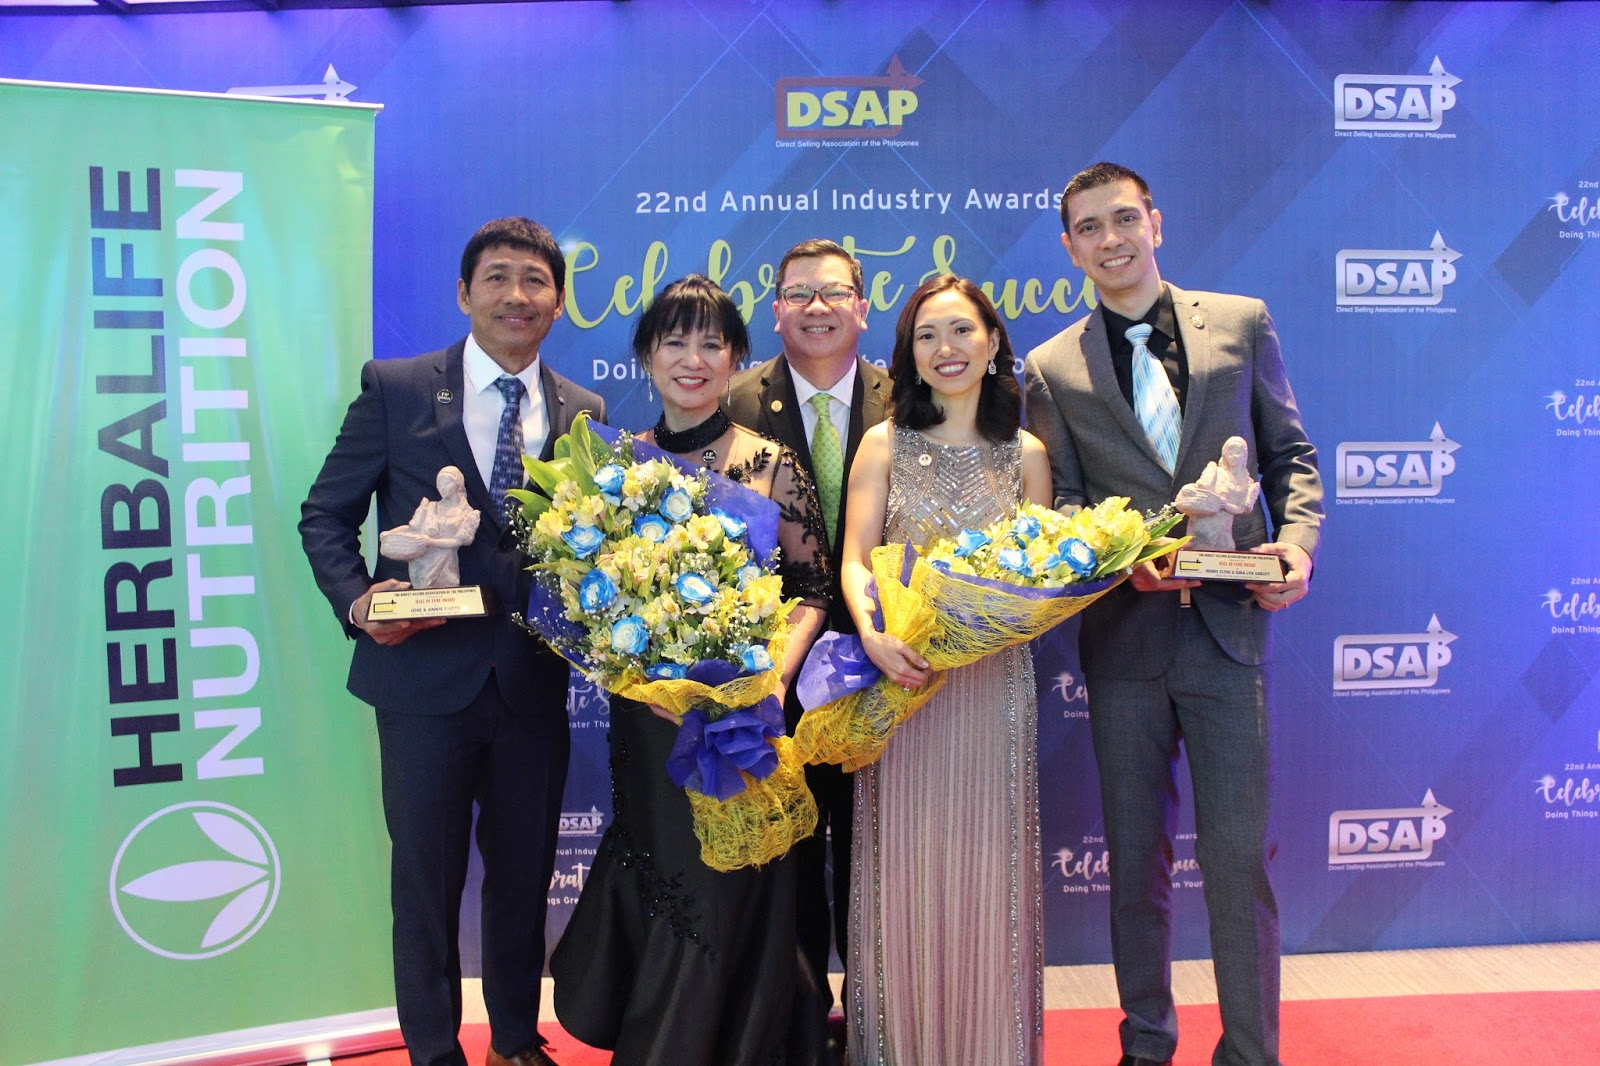 Herbalife Nutrition's Top Philippines Members Win Big at Direct Selling Association of the Philippines Industry Awards